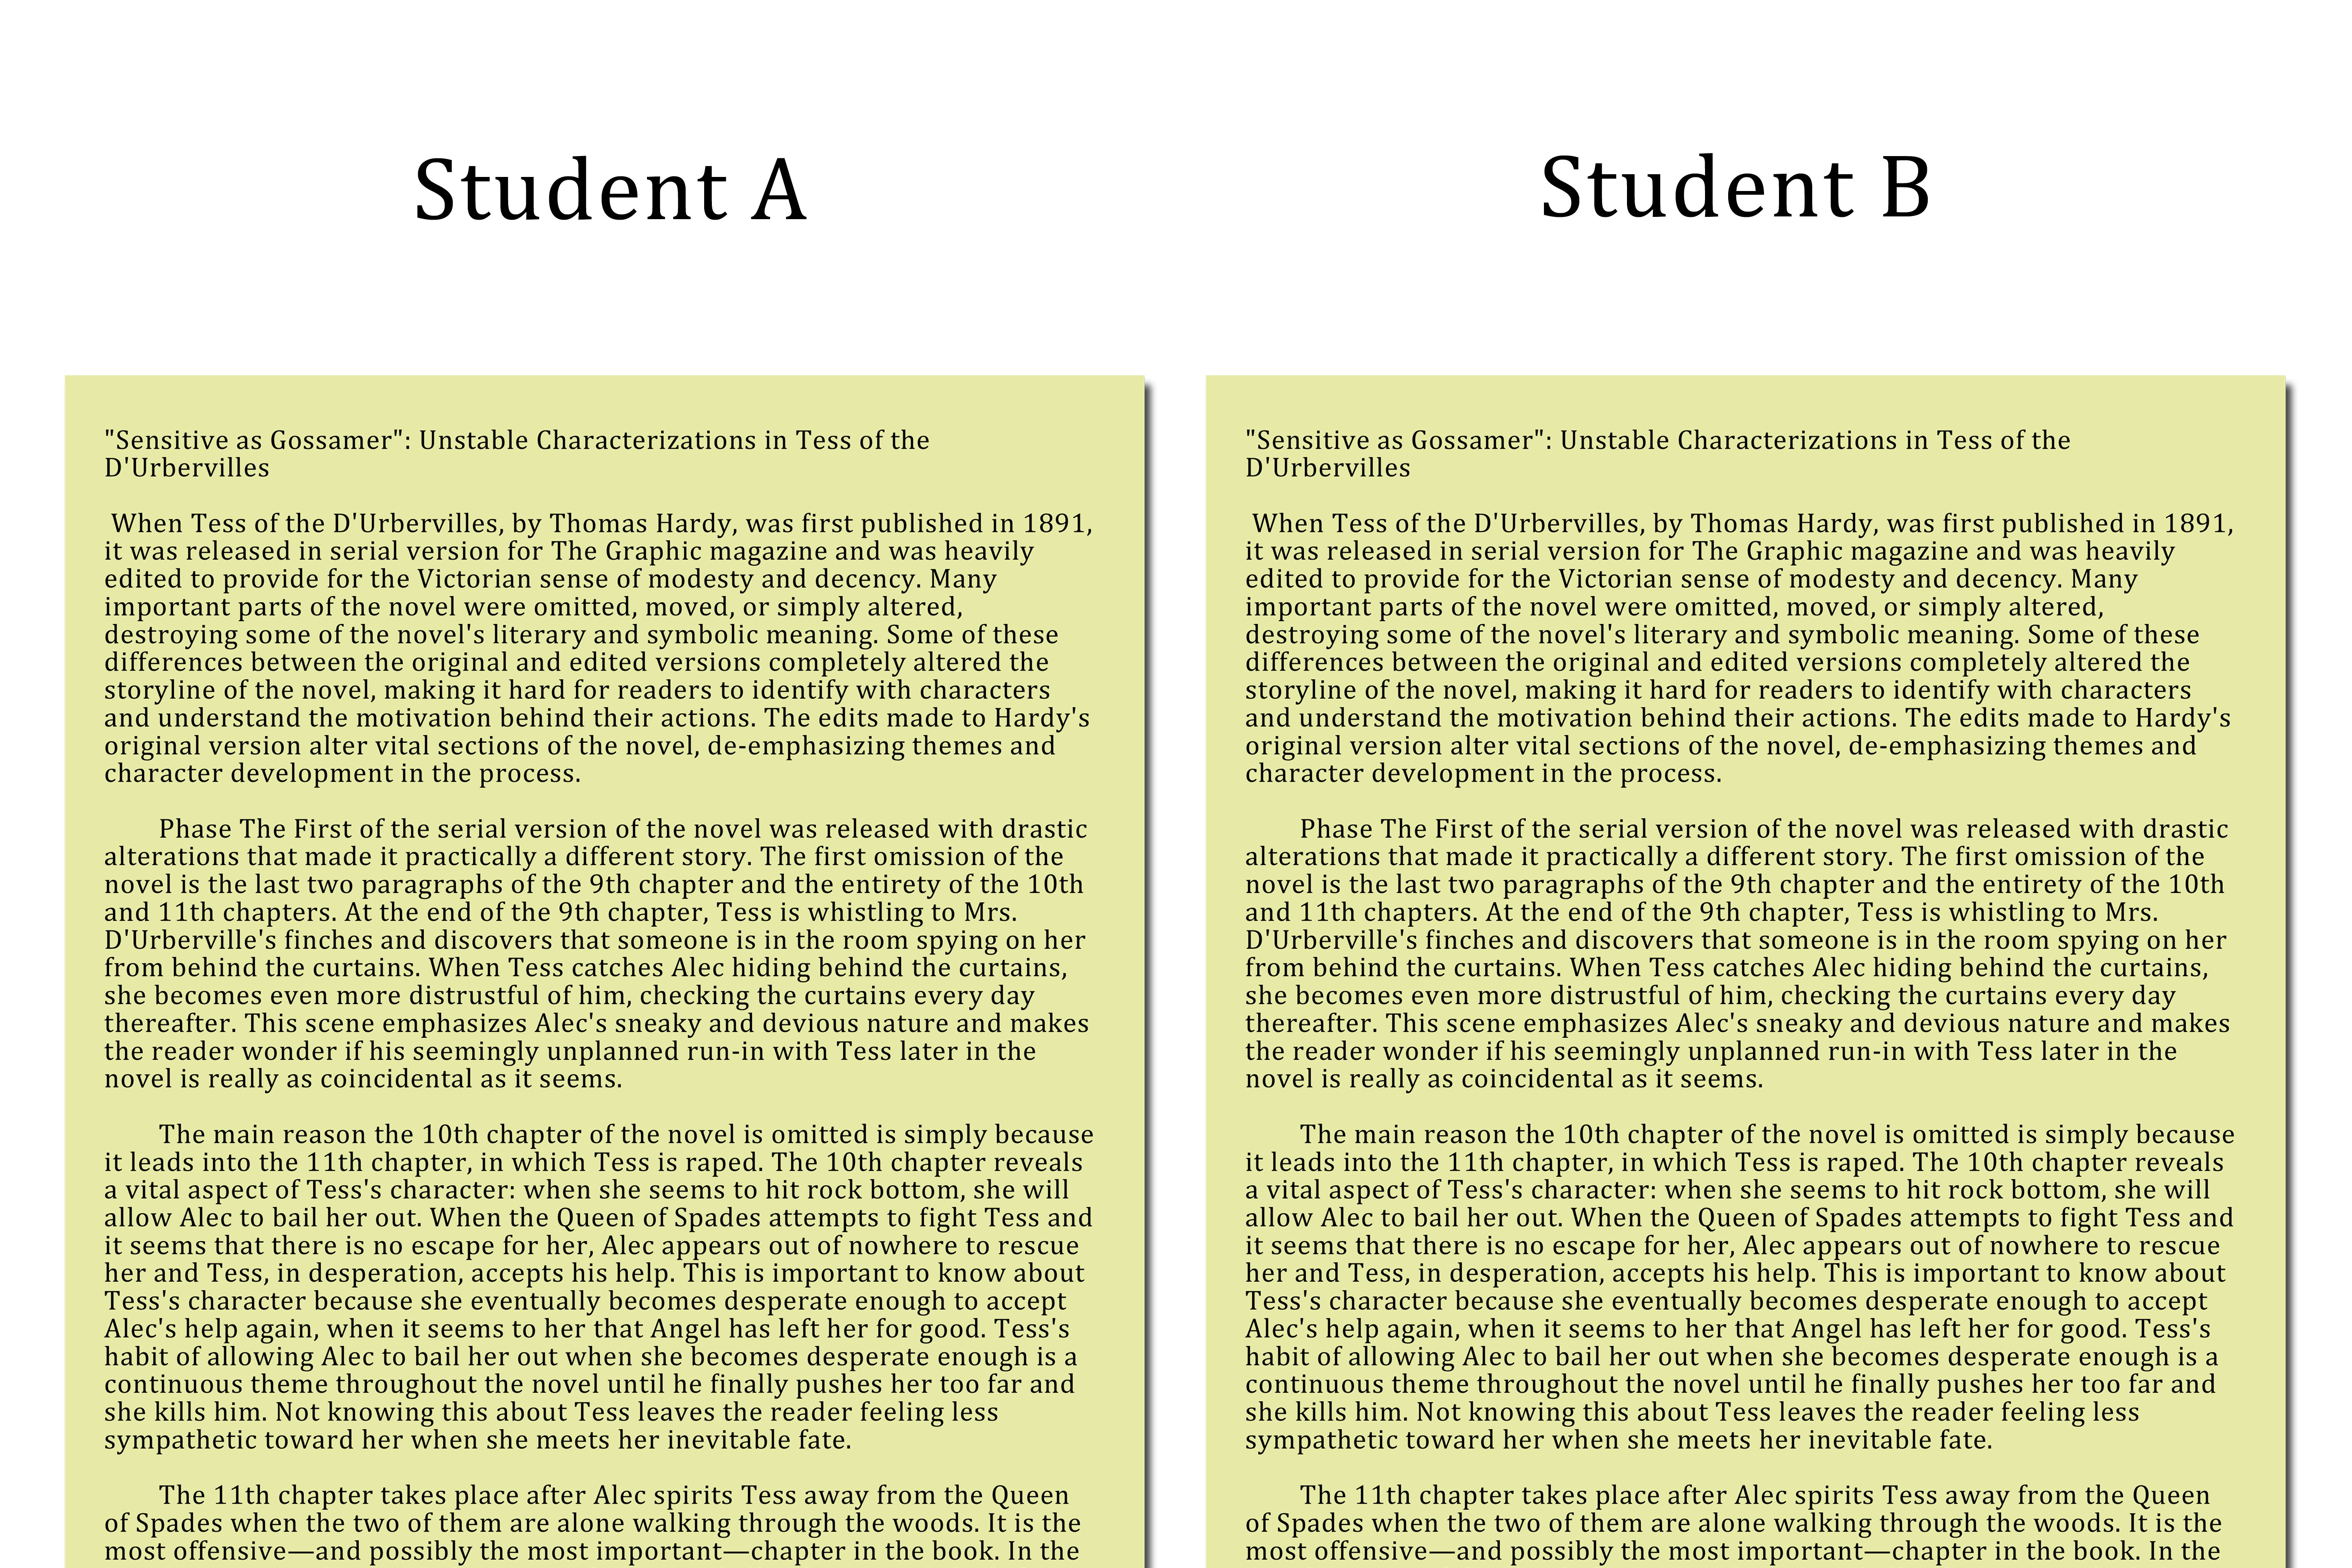 004 Write Your Essay How To Paper Steps Pictures Pay Better Essays Reddit Amazon Pdf Book By Bryan Greetham In English The Guardian Phenomenal A Good Introduction Full